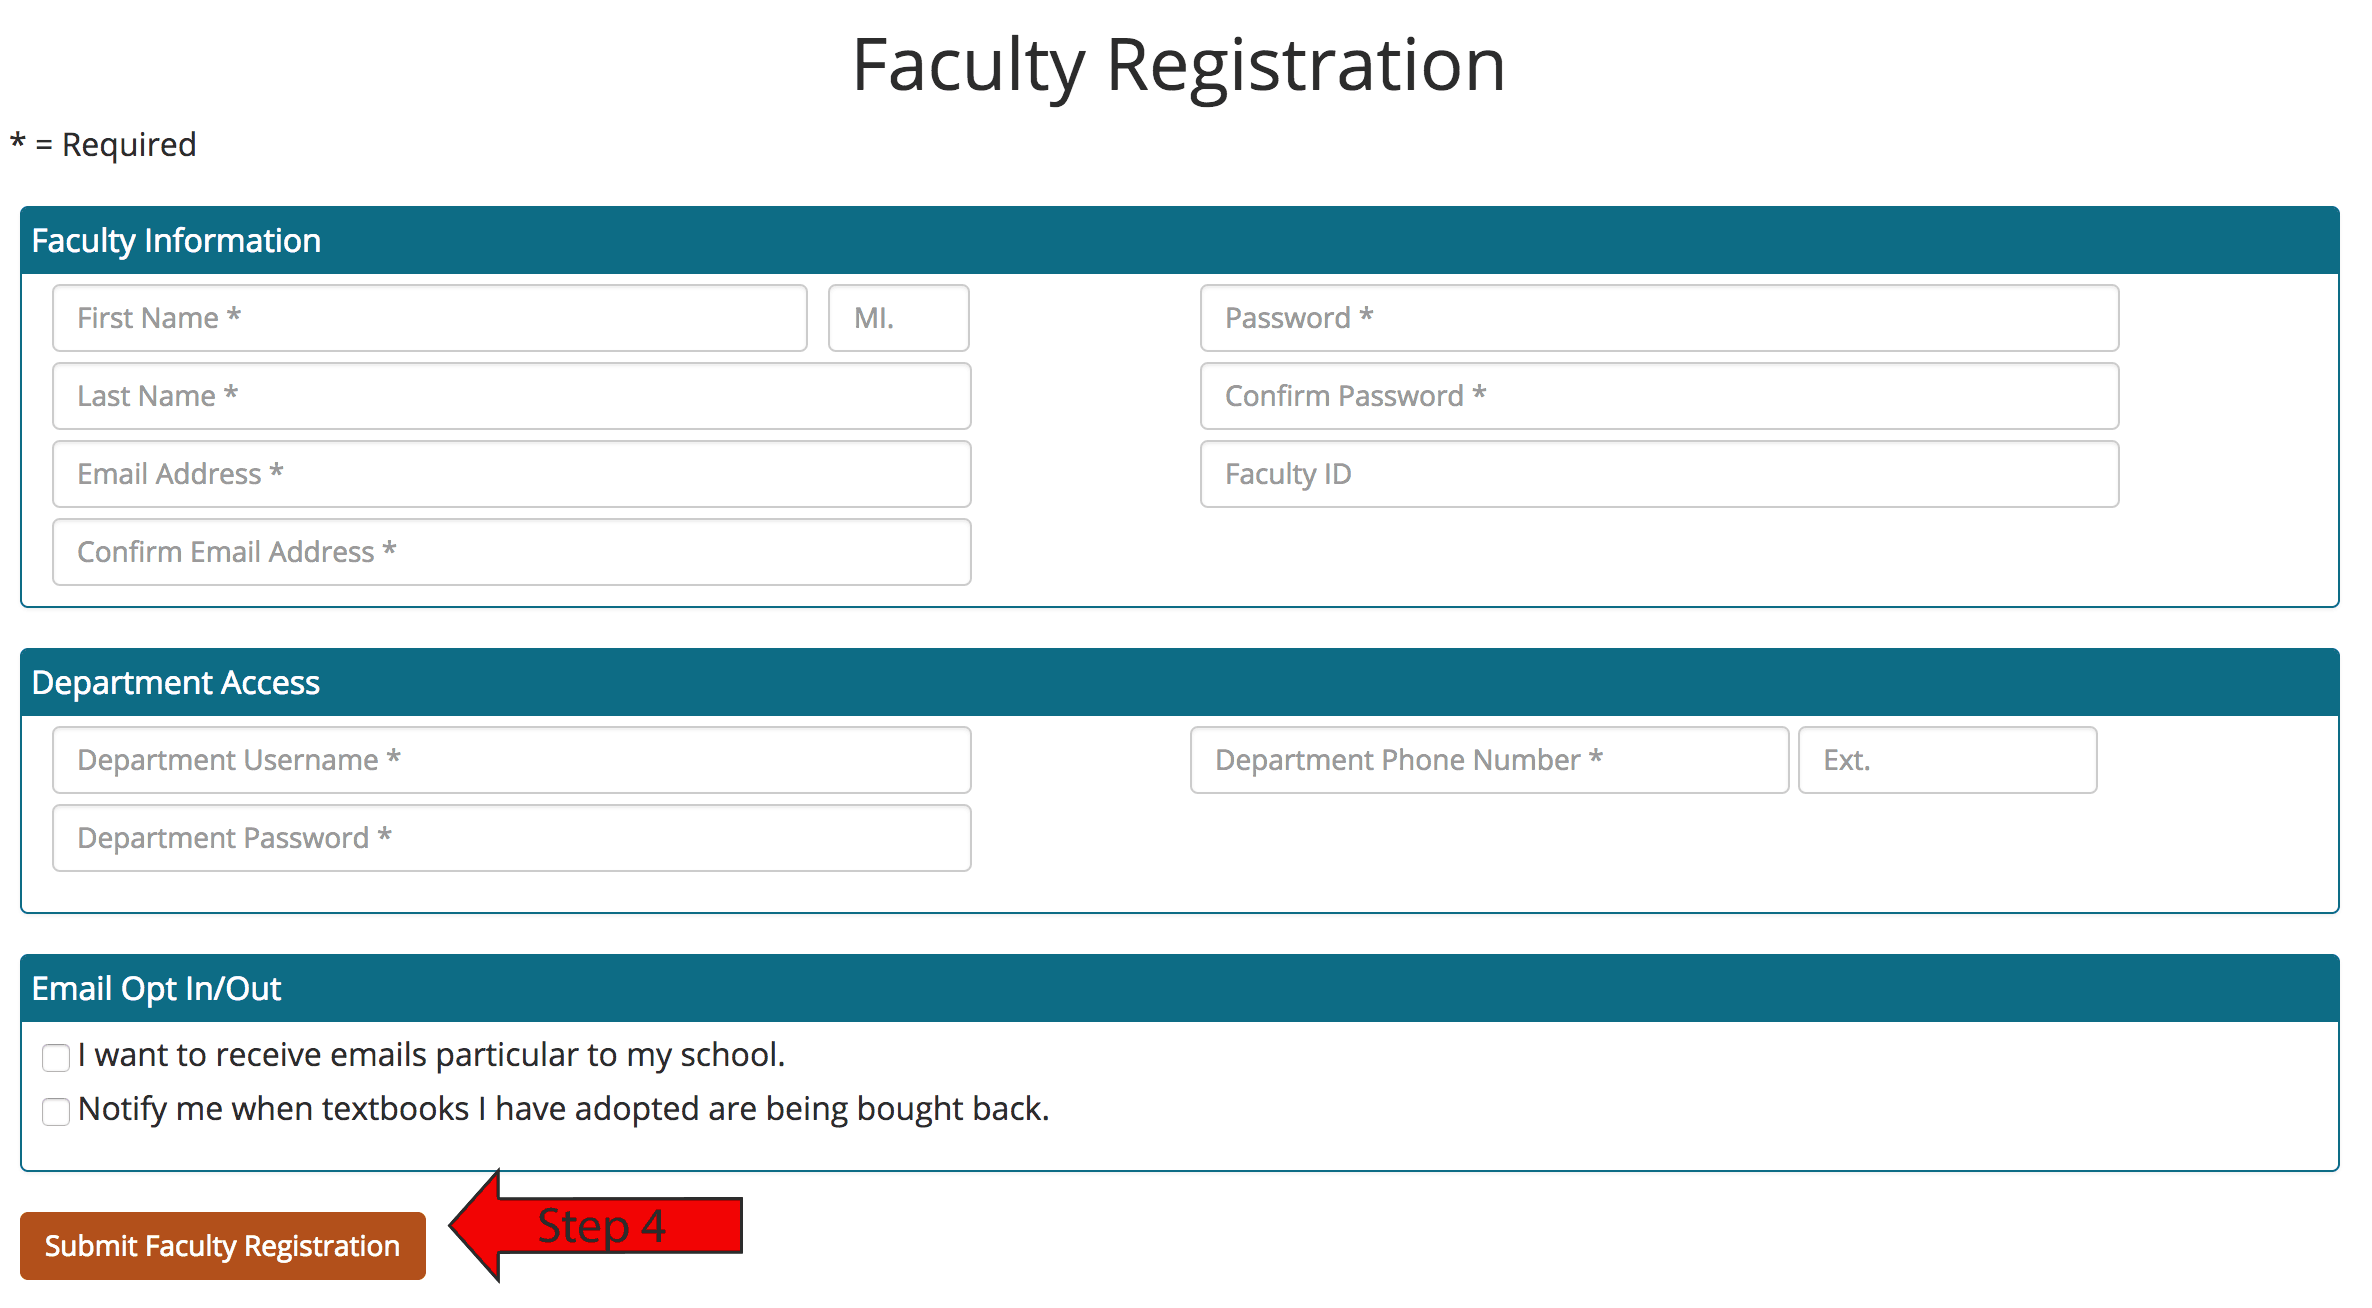 Submit Faculty Registration Button